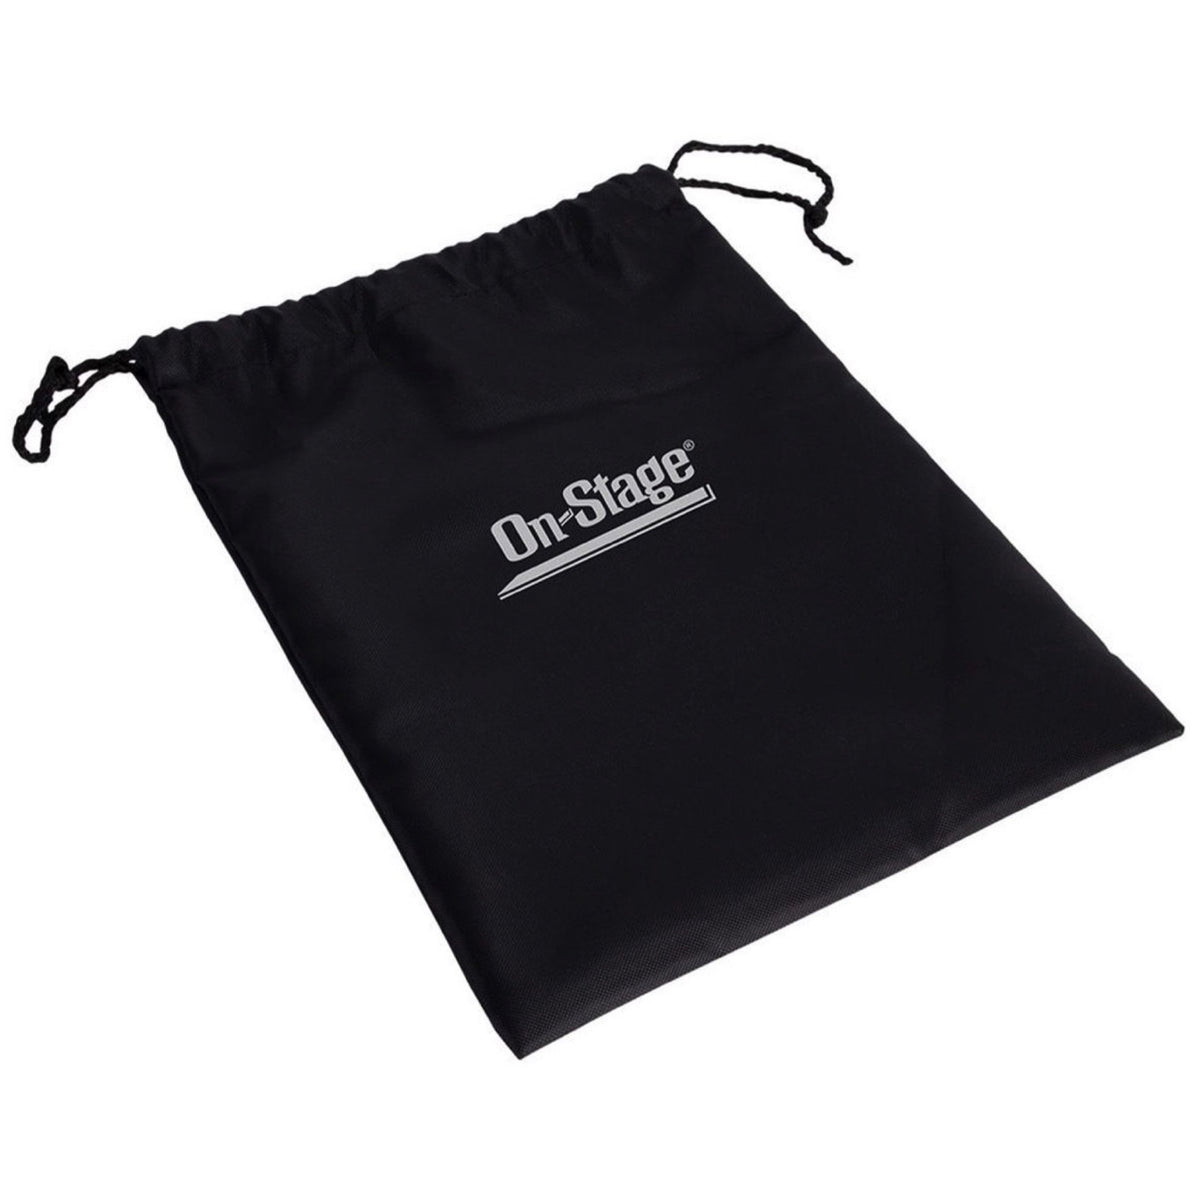 On-Stage HB4500 Headphone Bag